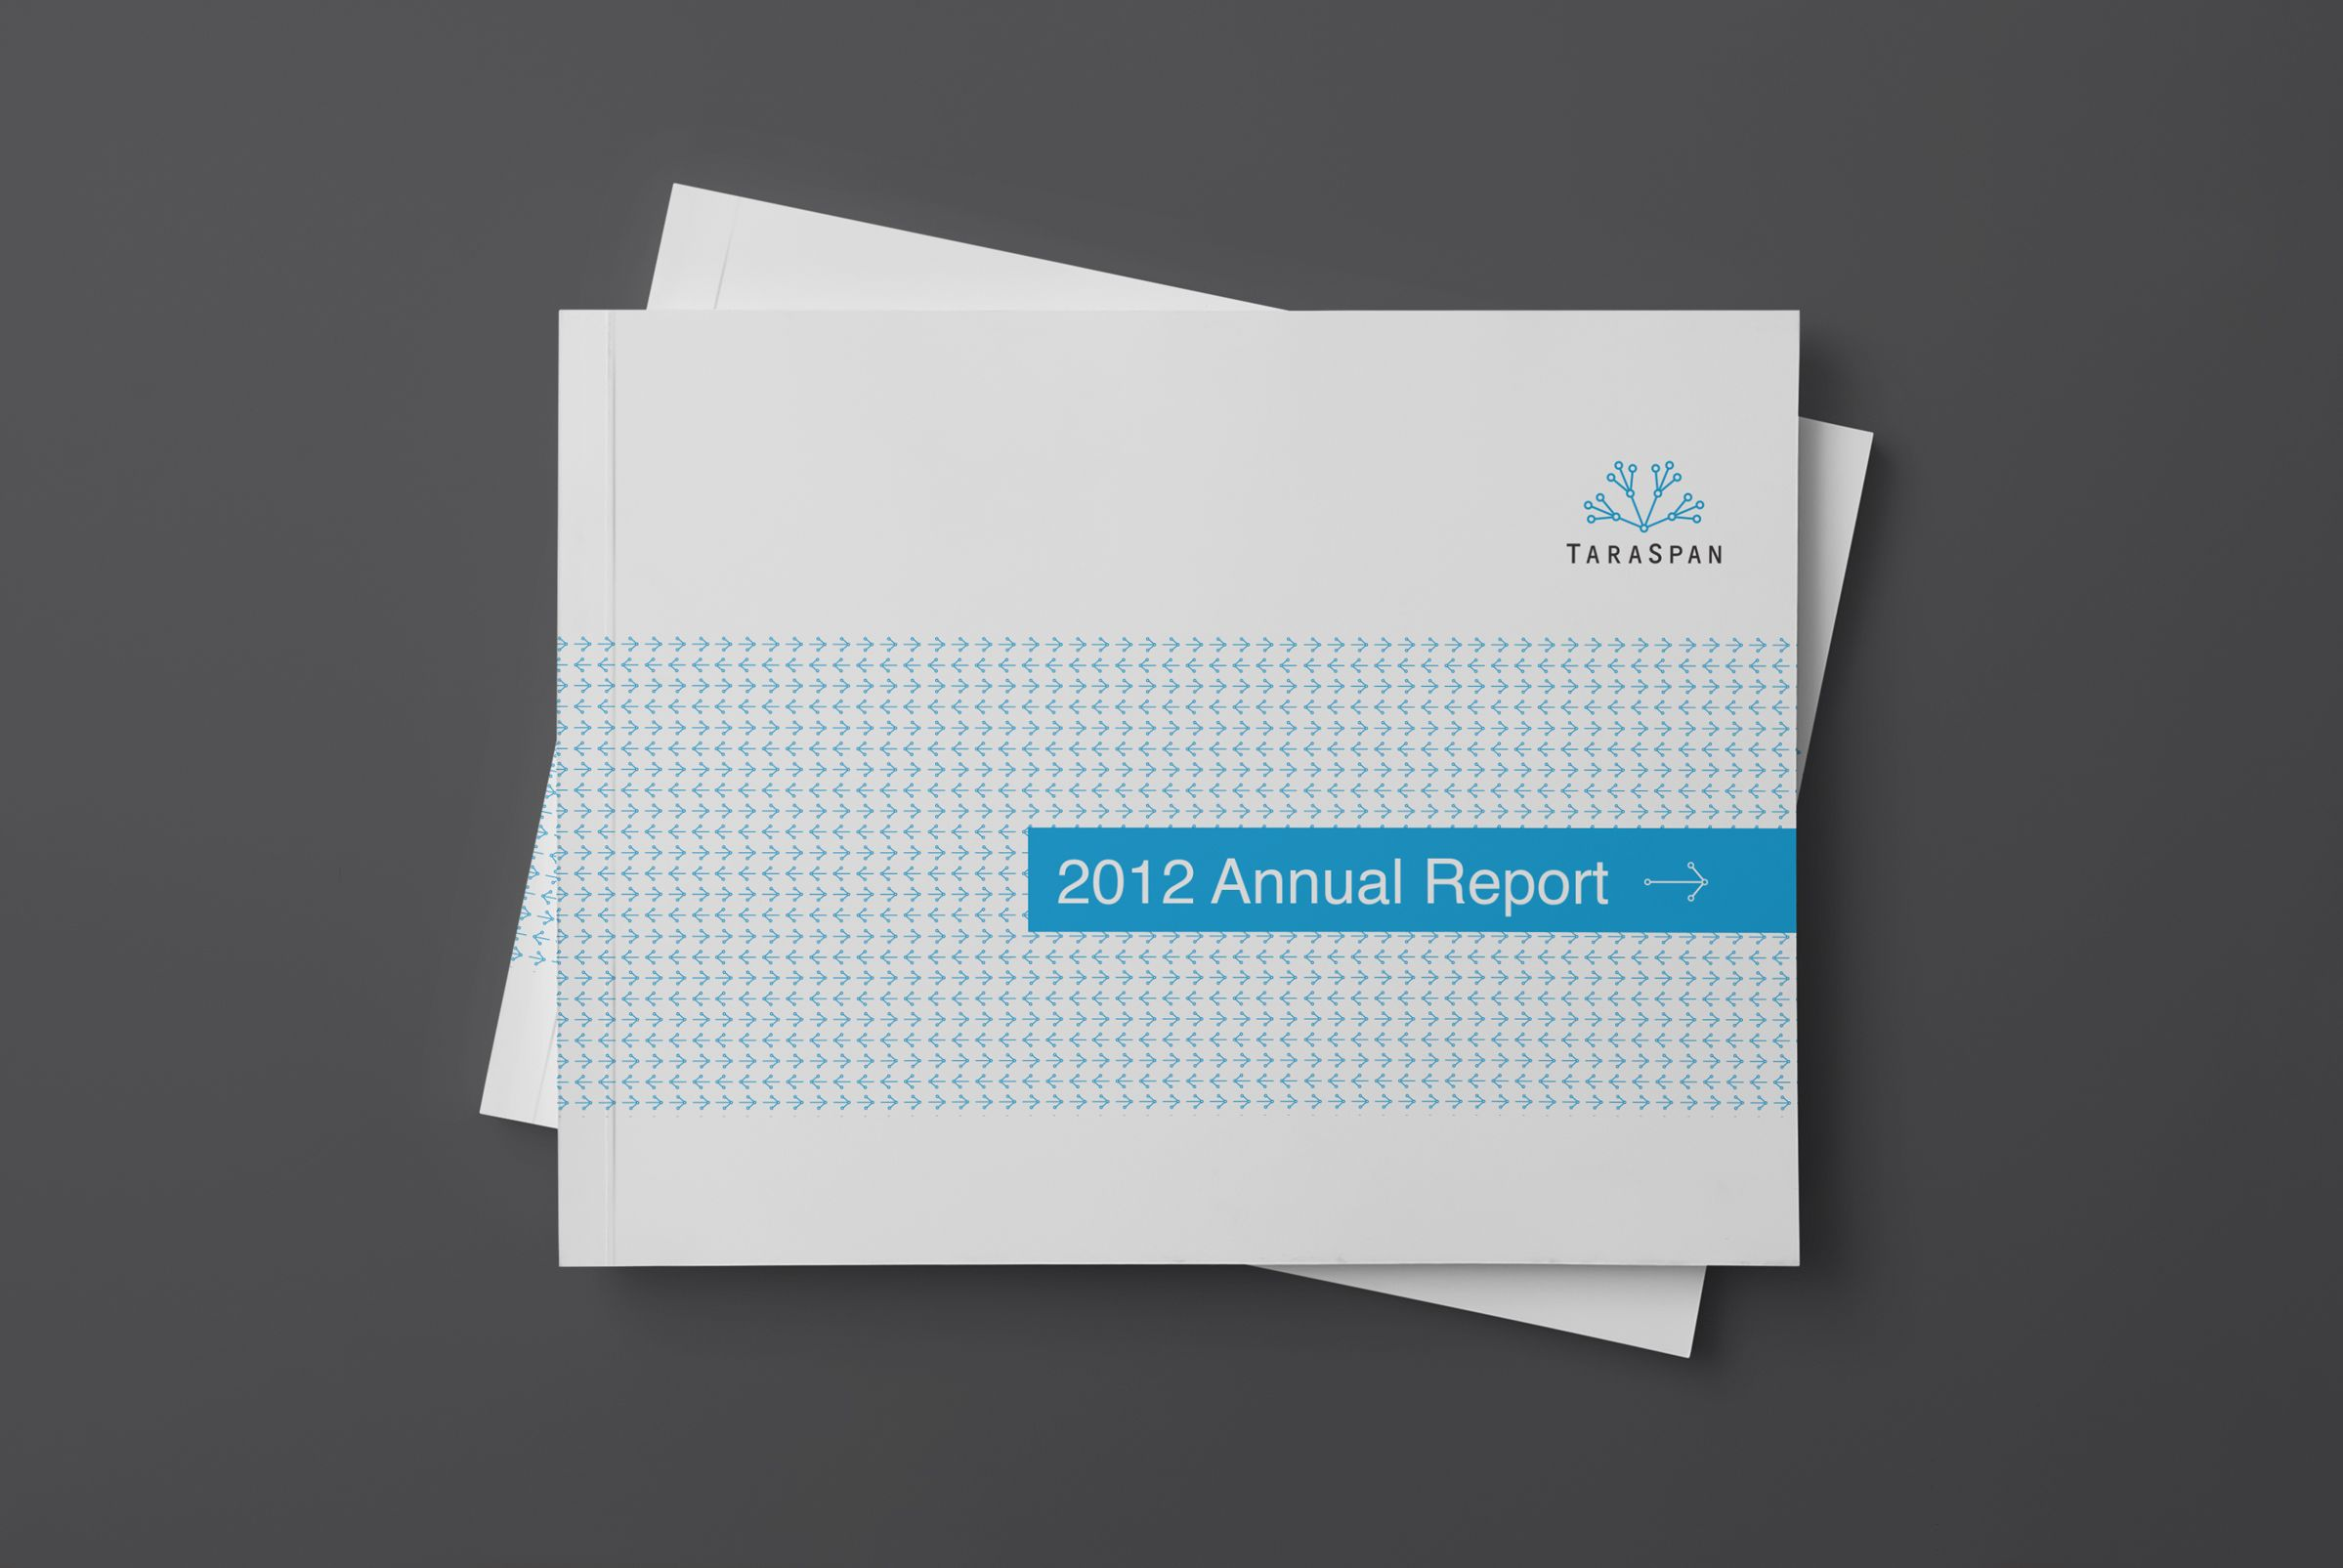 Annual Report for TaraSpan Group, India Business Accelerator by Ottawa Graphic Designer idApostle